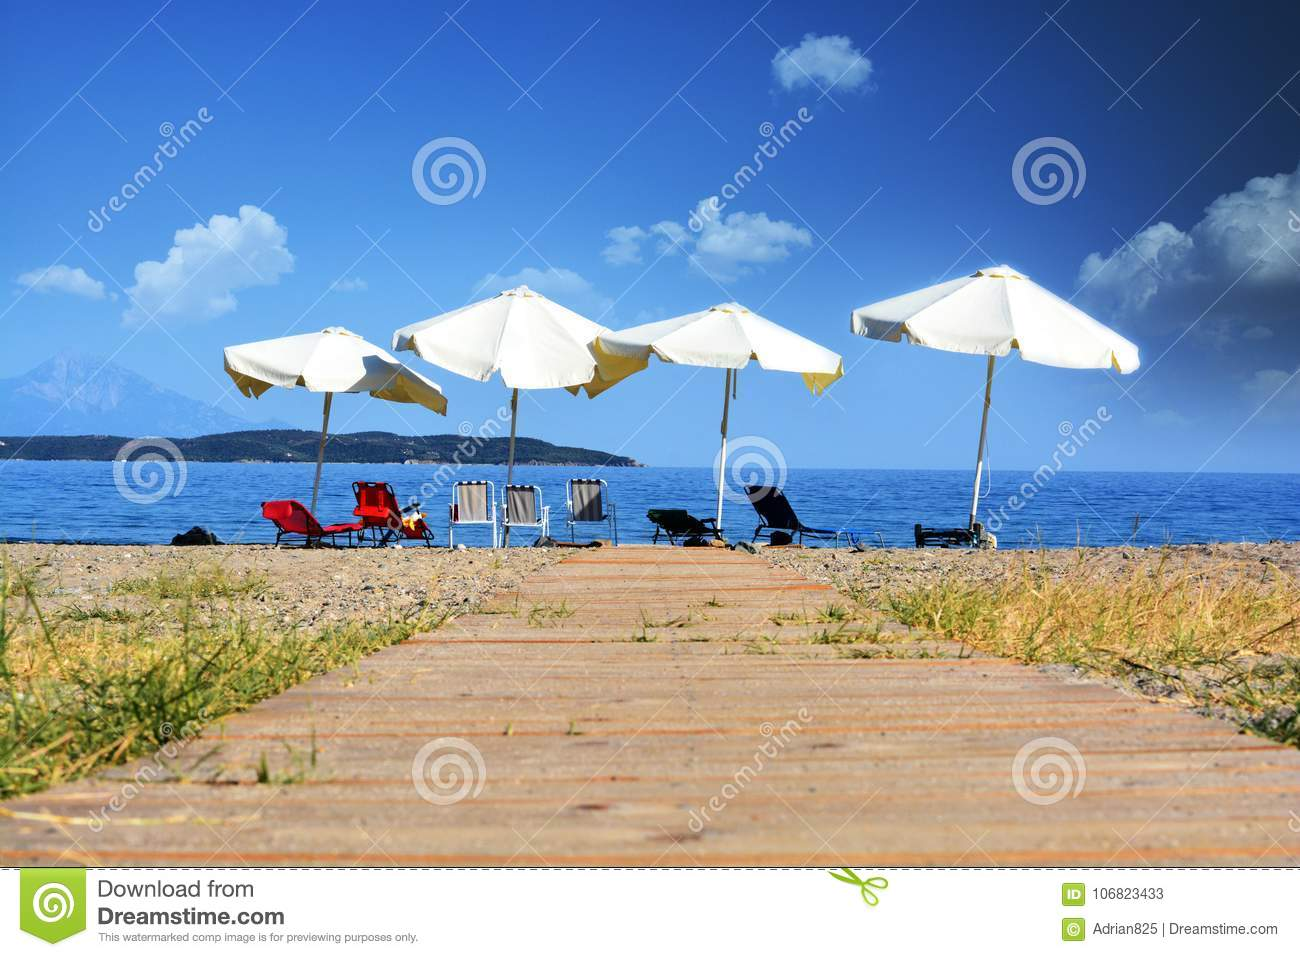 Relax concept, empty beach with parasols and chairs